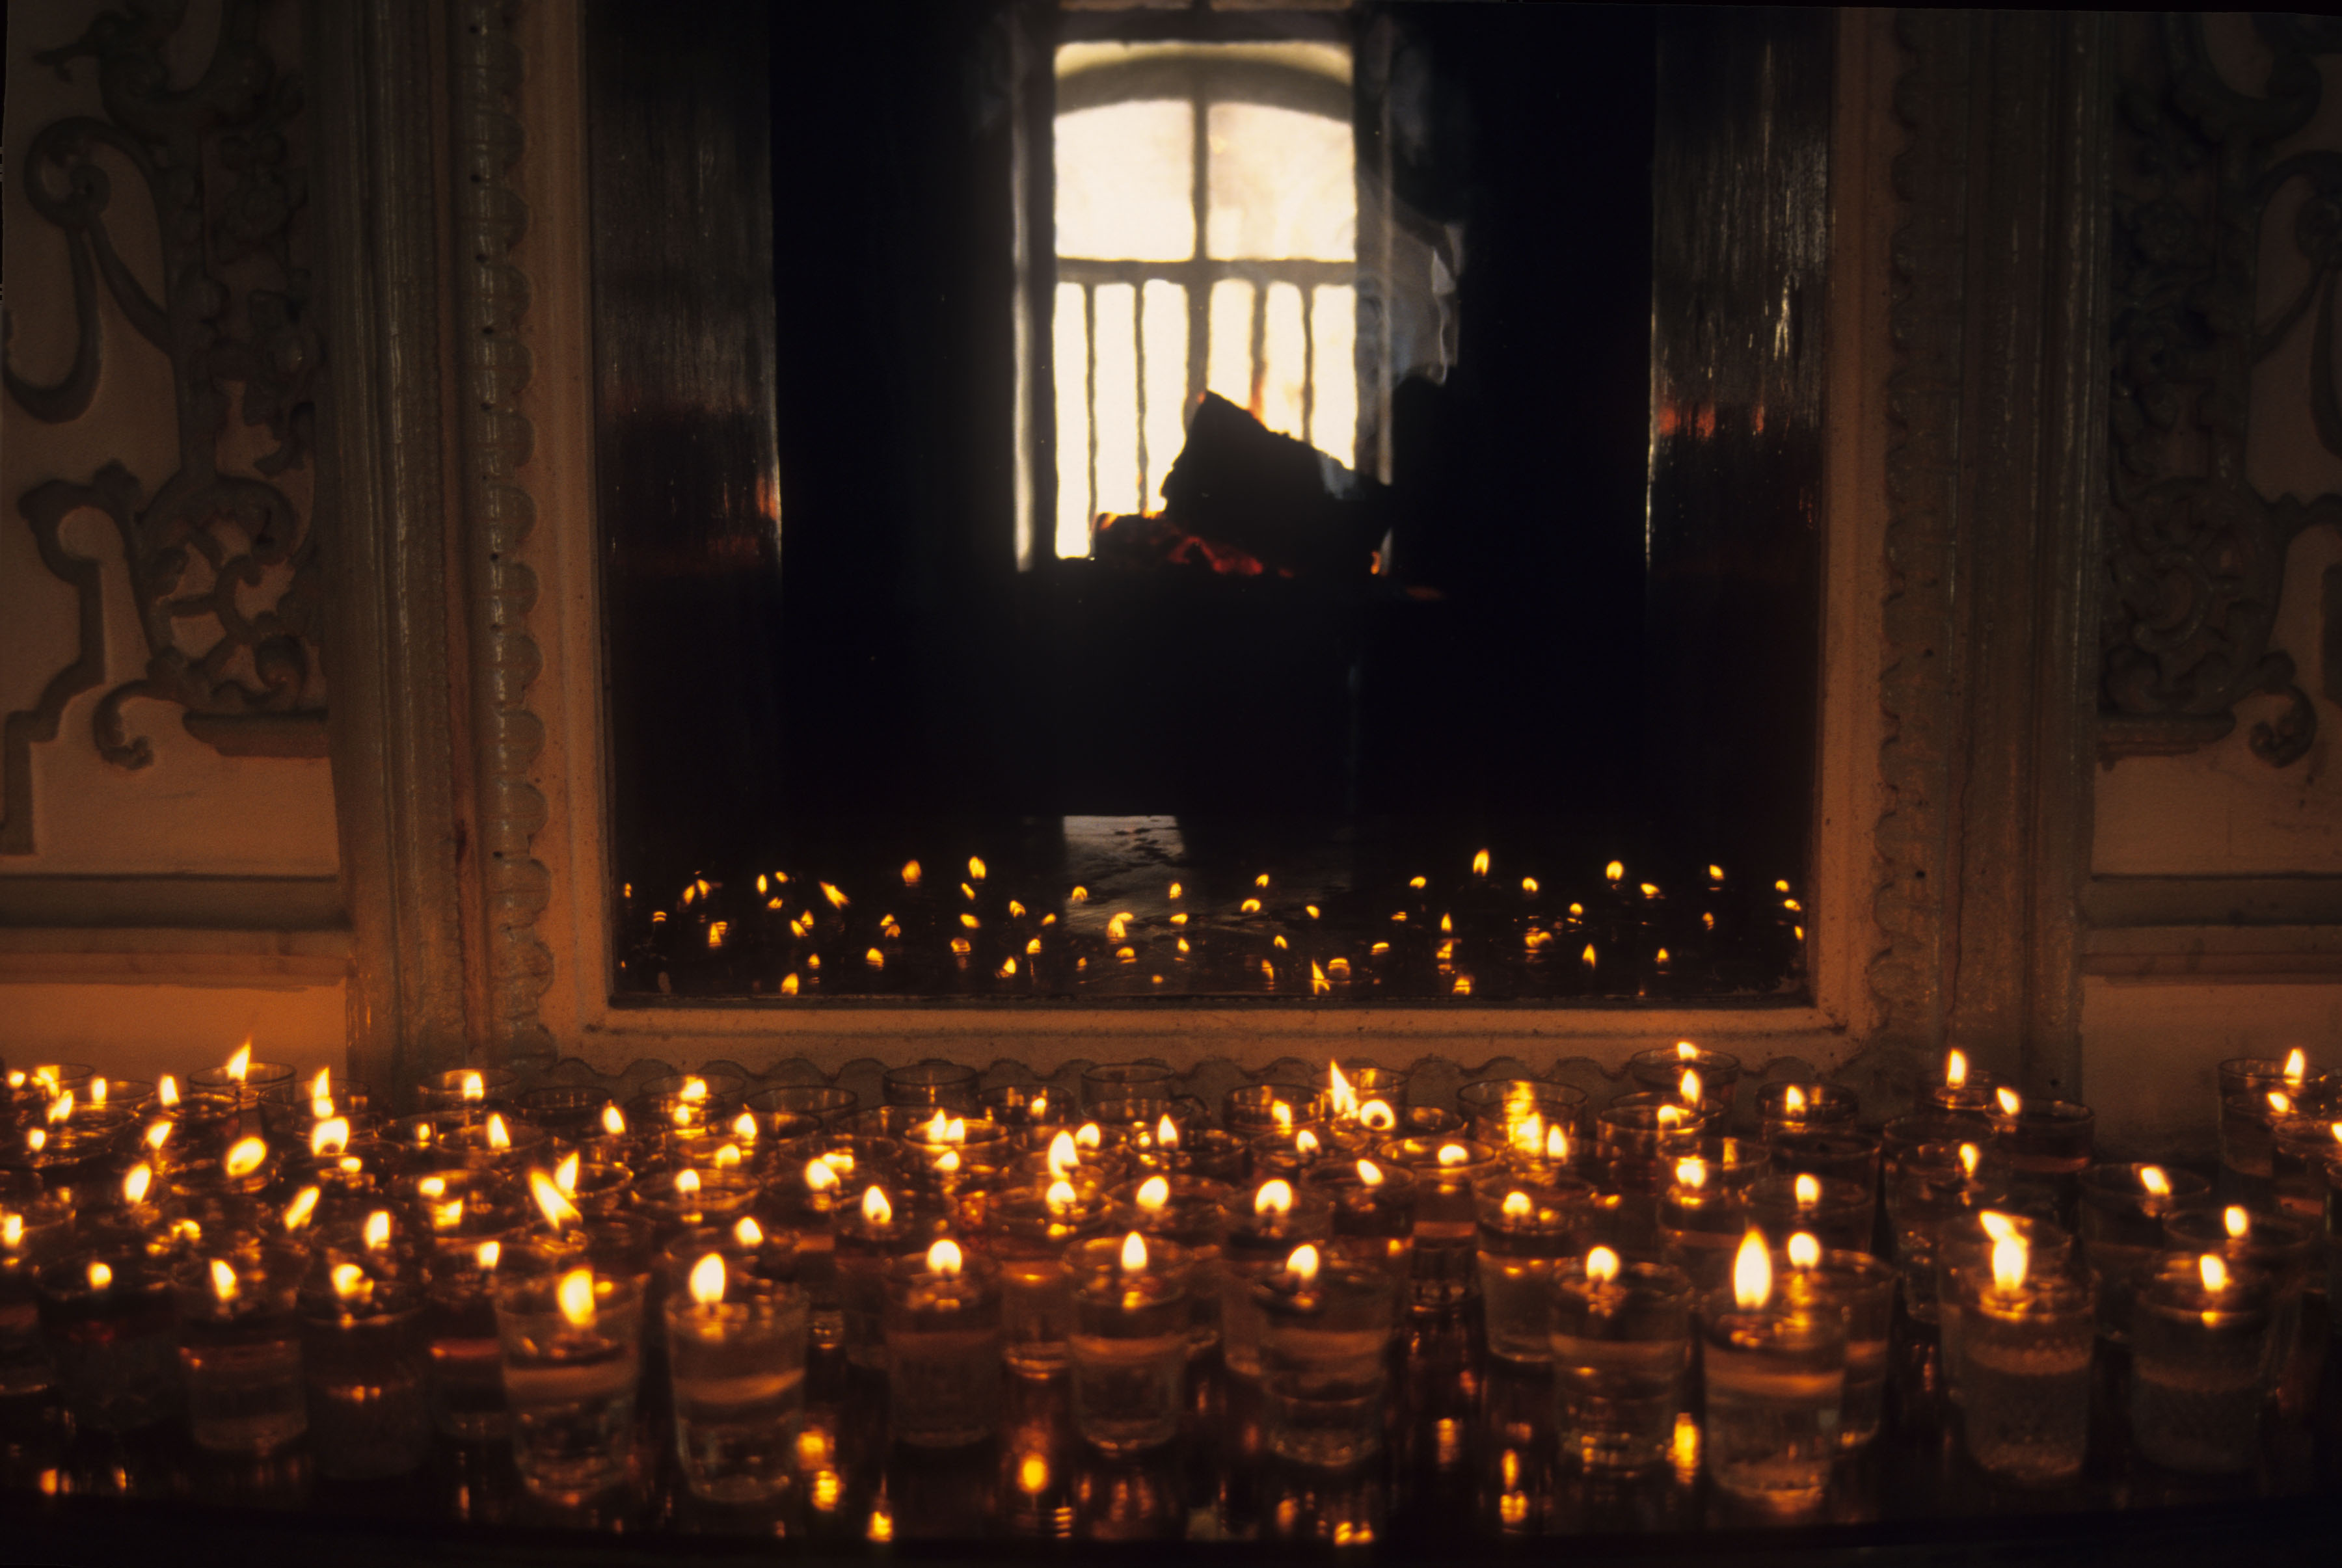 Candles in front of a mirror during a Nowruz (Iranian new year) ceremony at the Rostam Bagh Zoroastrian fire temple in Tehran, Iran, circa 1995. (Photo by Kaveh Kazemi/Getty Images)